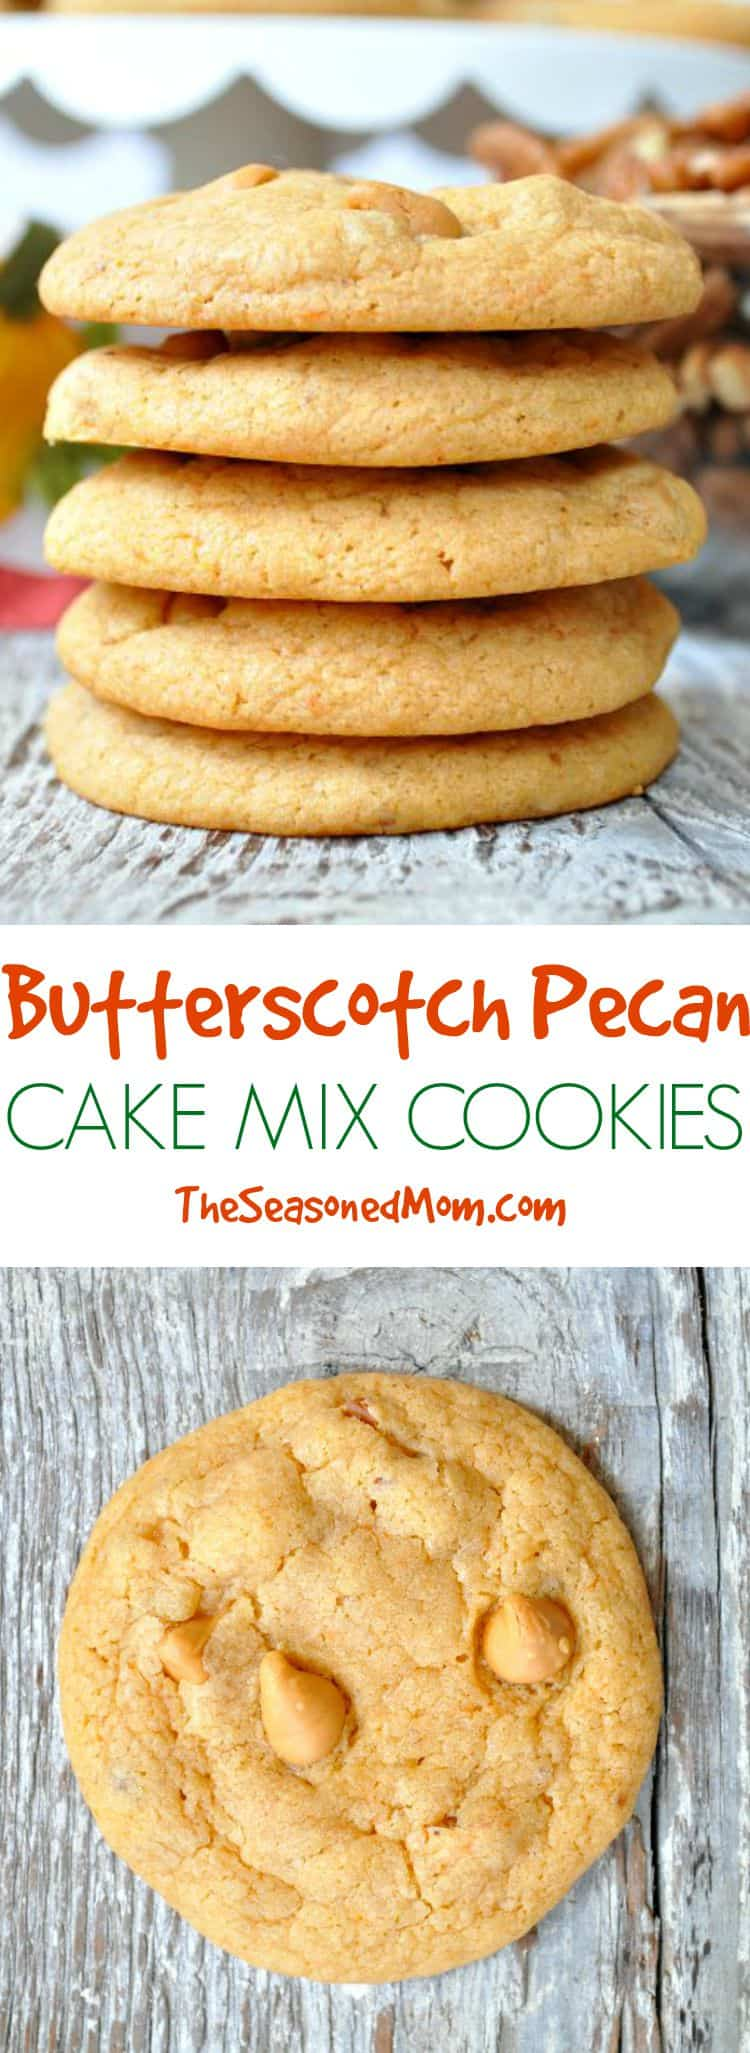 ... Butterscotch Pecan Cake Mix Cookies are soft, chewy, and absolutely